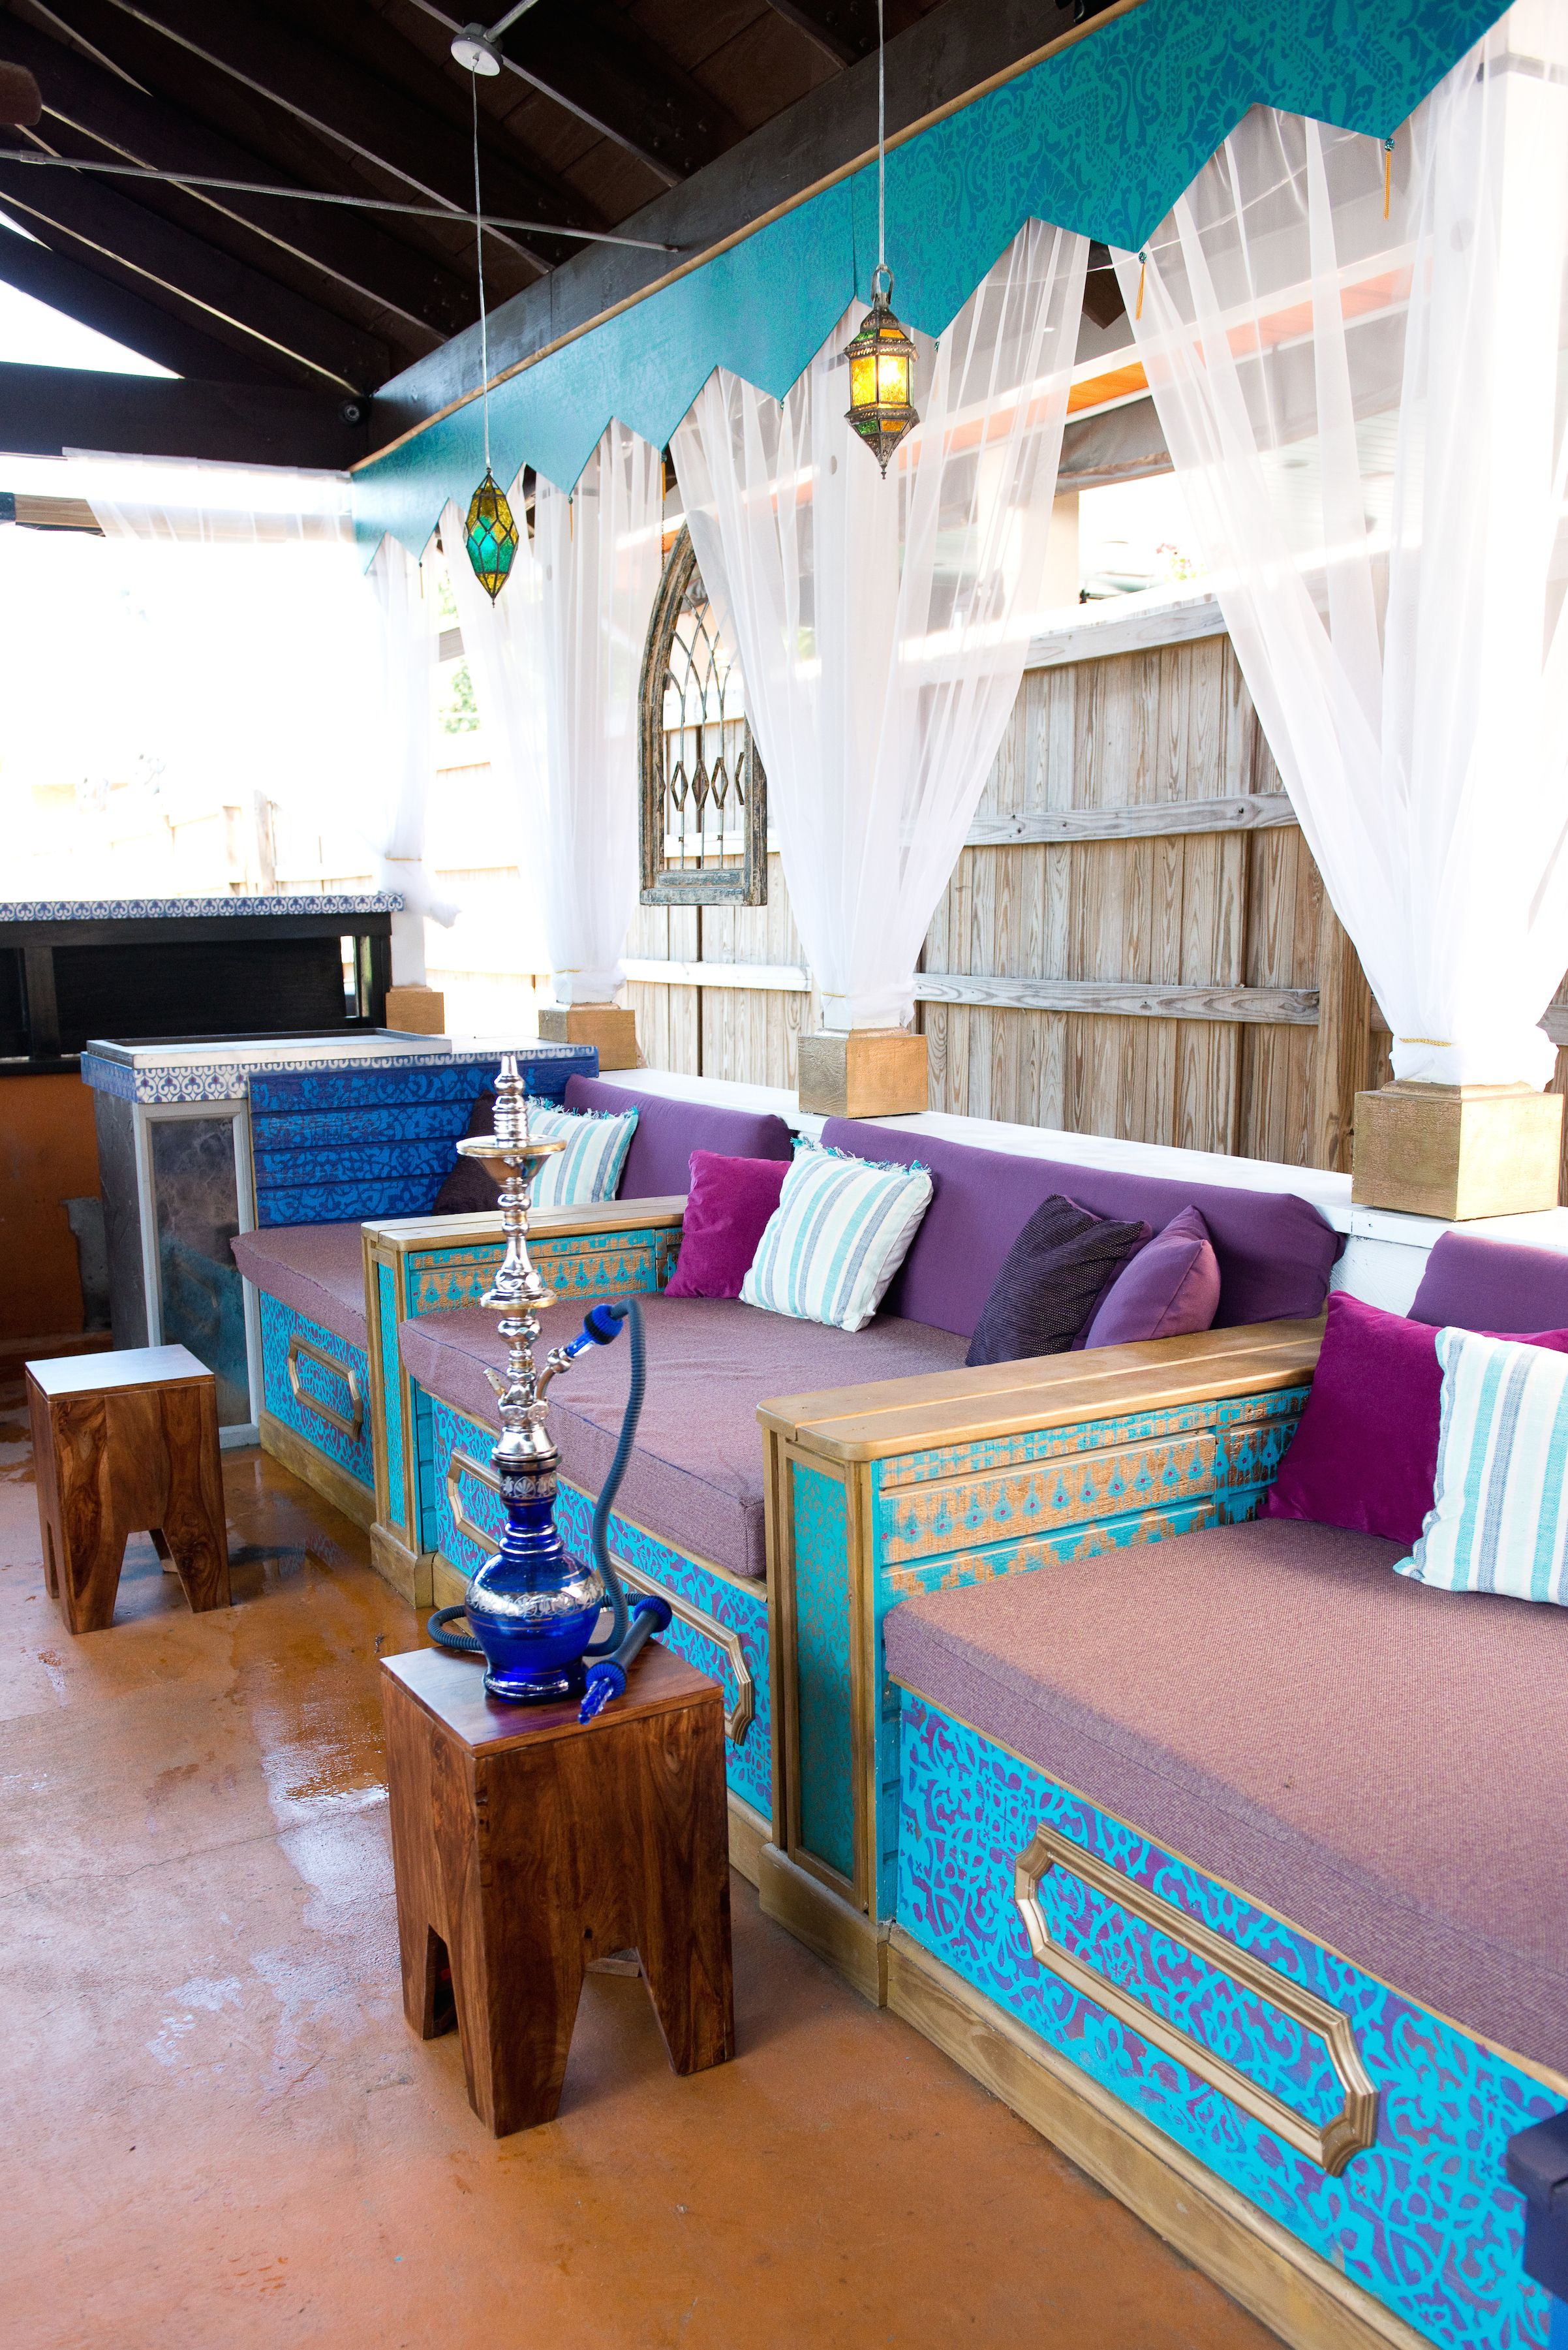 moroccan decor priya hookah bar and lounge charleston sc by jlv creative jlv creative. Black Bedroom Furniture Sets. Home Design Ideas